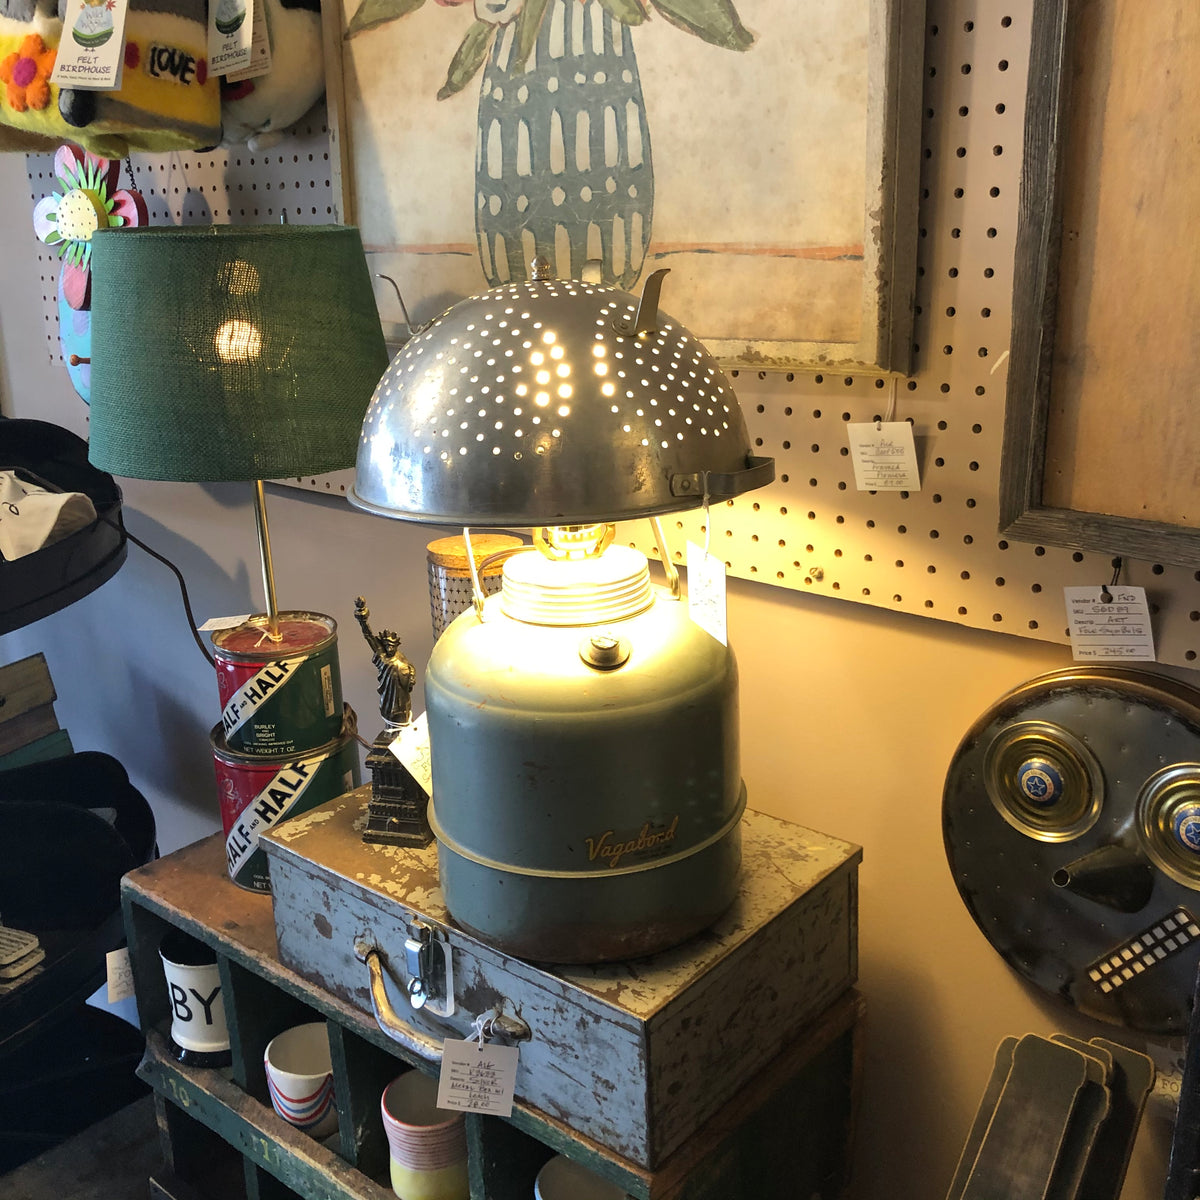 Thermos lamp with kitchen strainer lamp shade